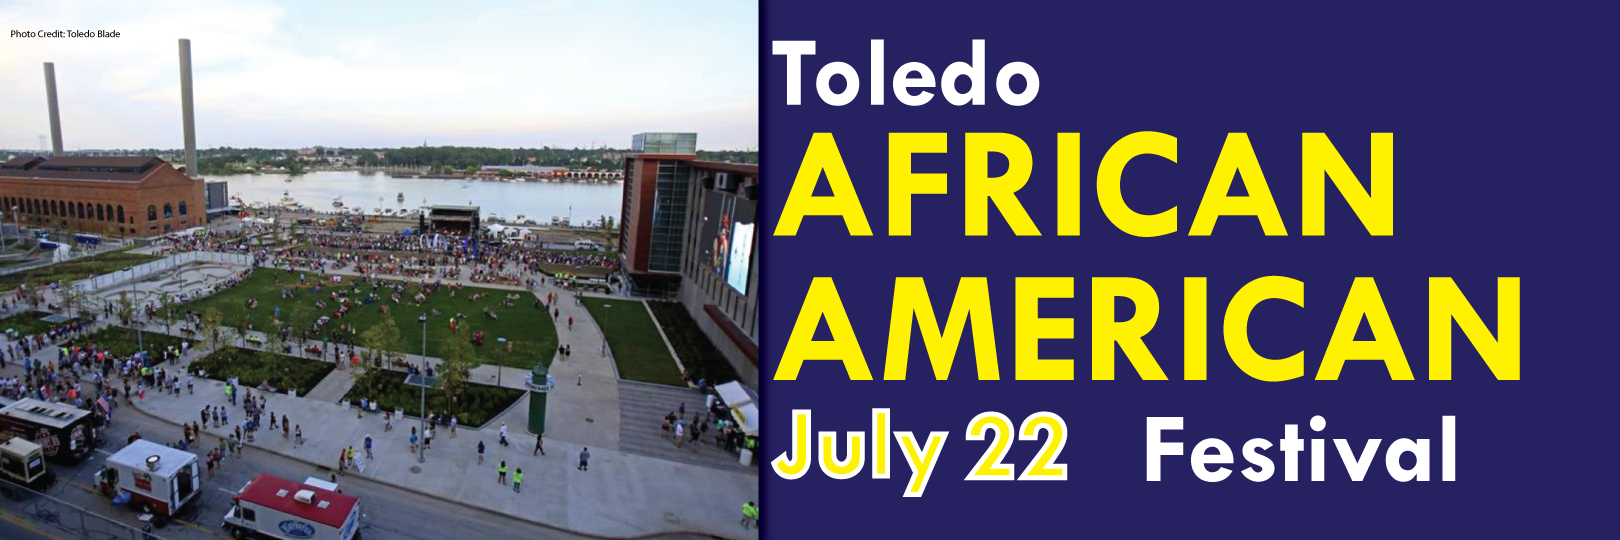 Aerial Photo of Promenade Park and date for Toledo African American Festival